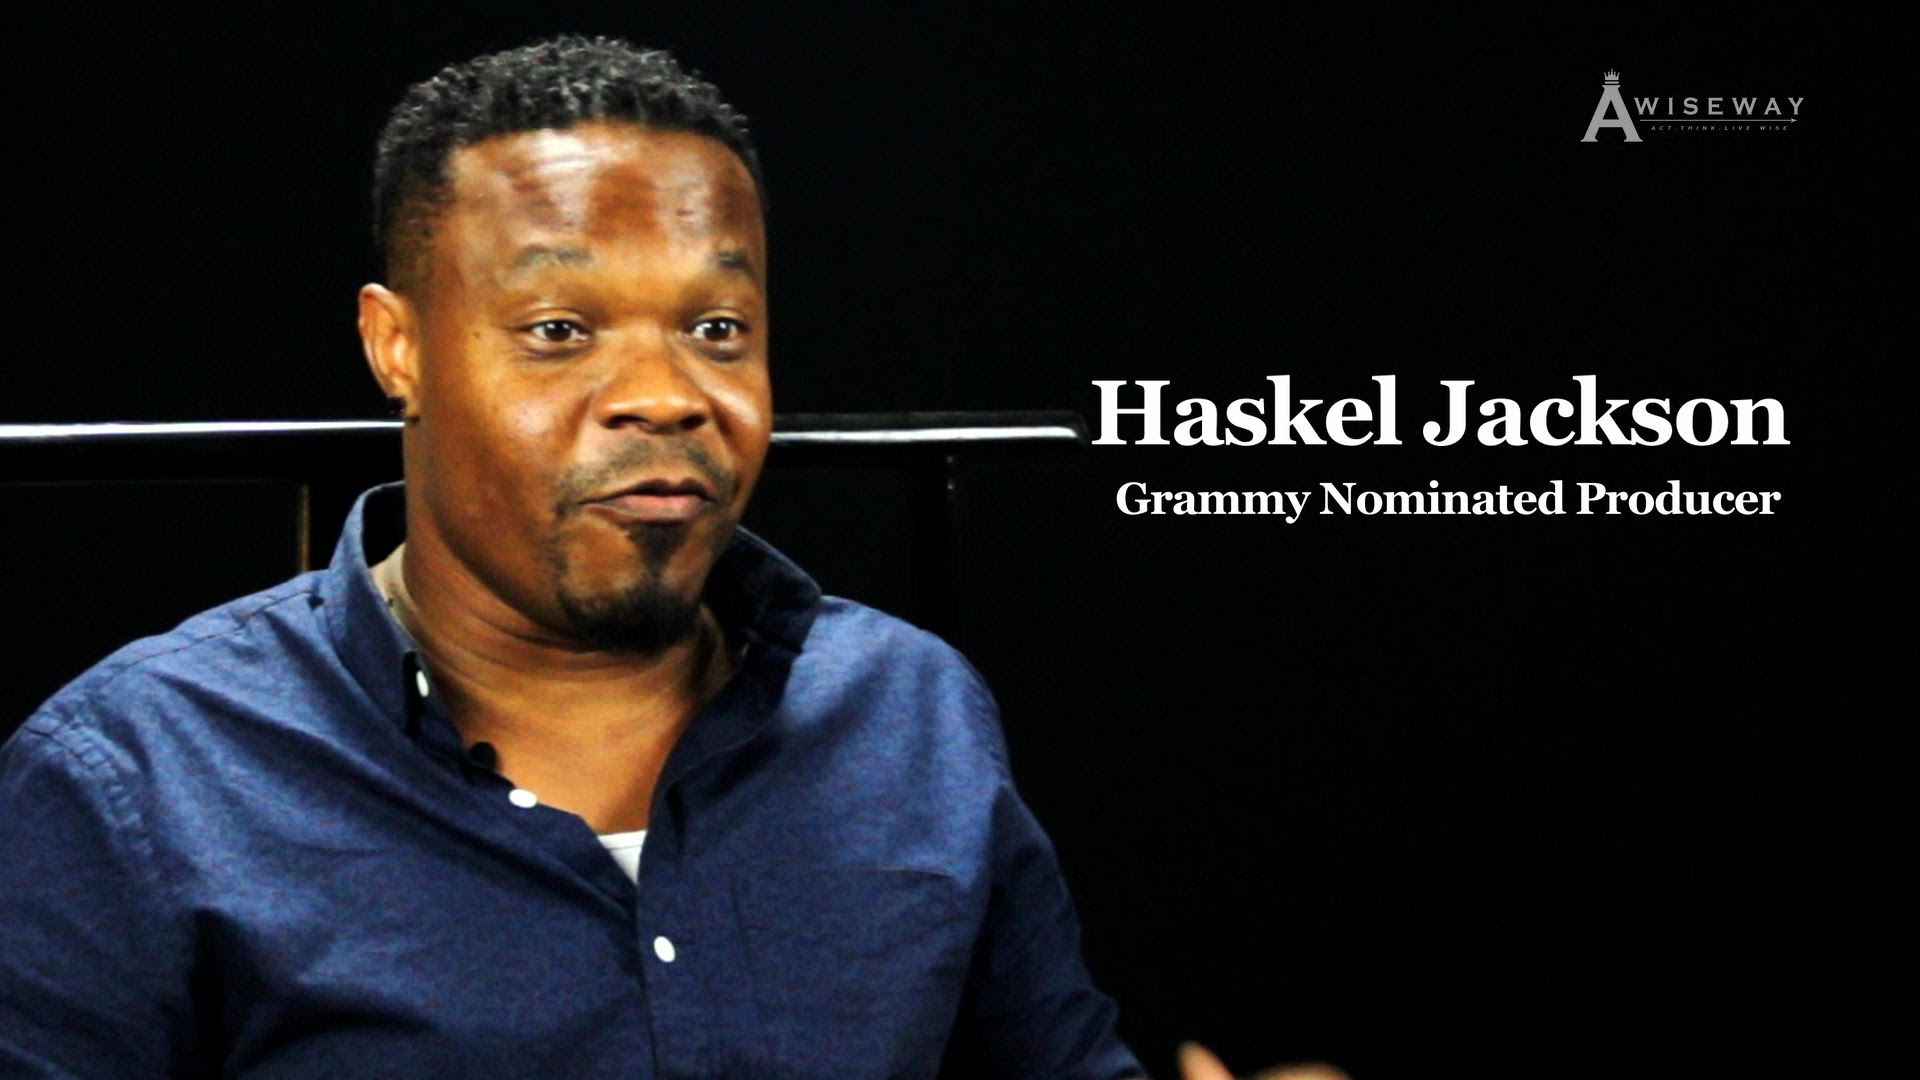 Grammy Nominated Producer Says Producer Need to Understand Their Value